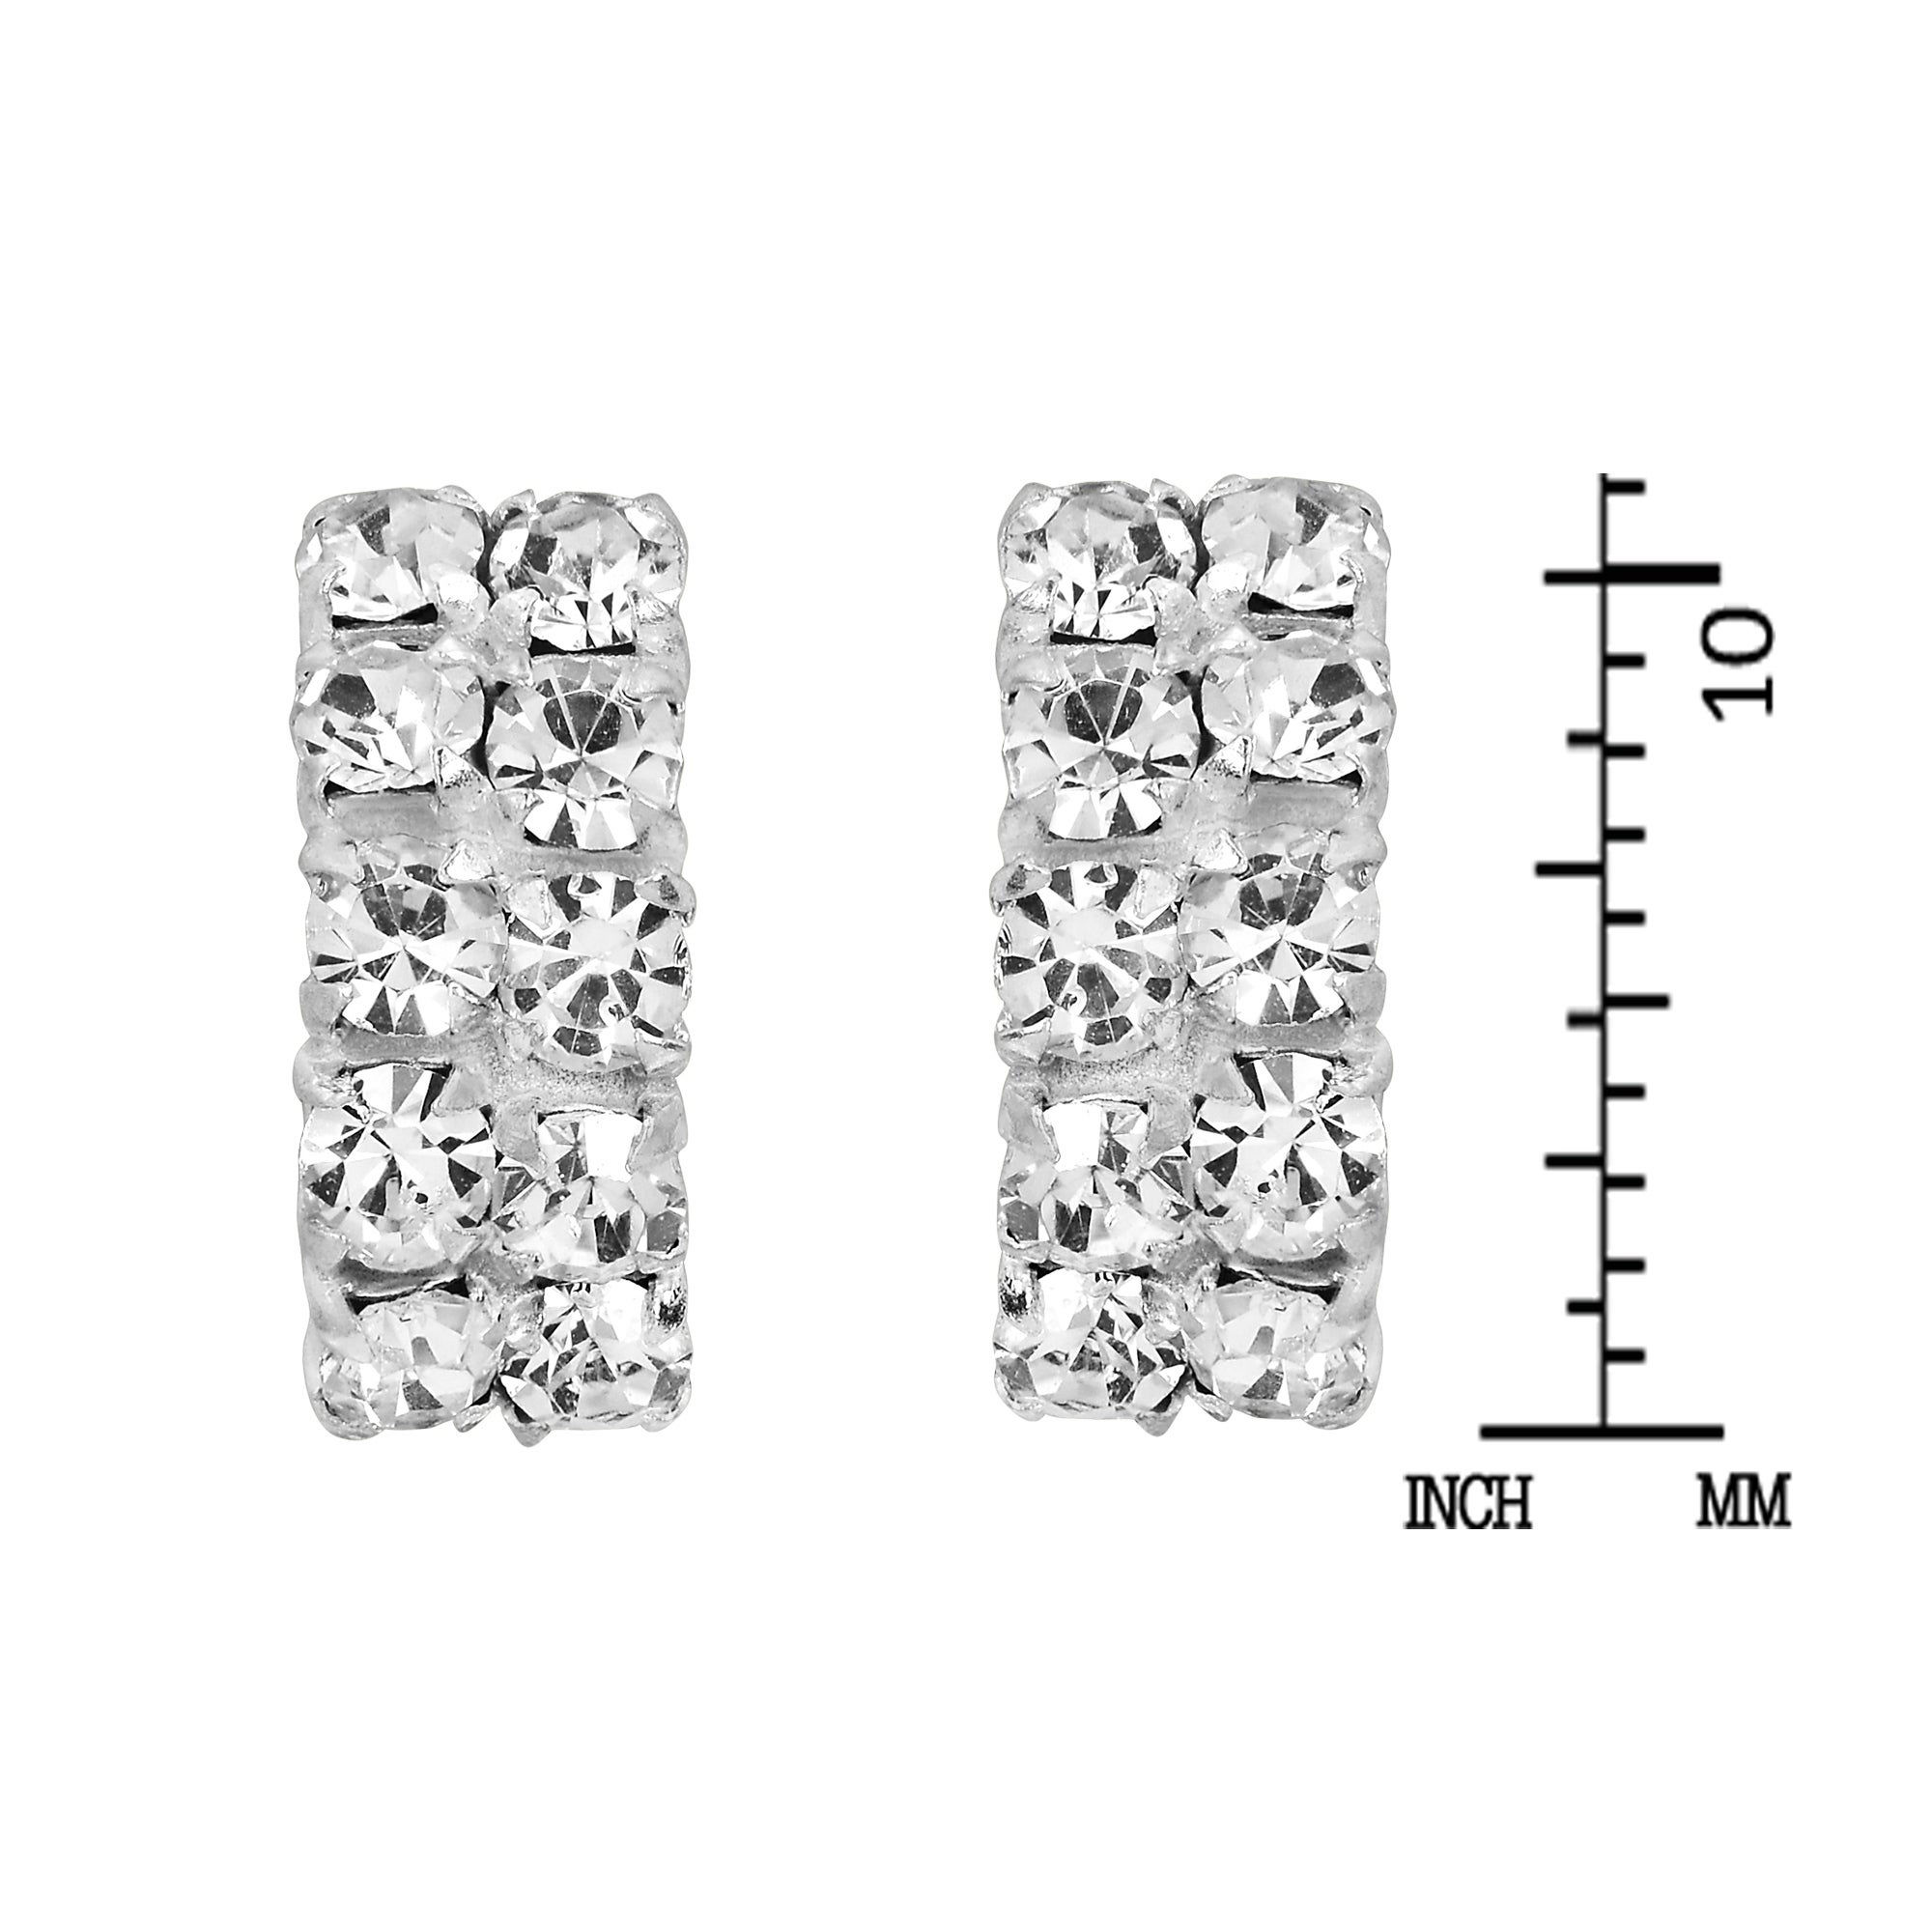 diamond scale false pear shape upscale rectangular product jahan shop cut subsampling earrings crop